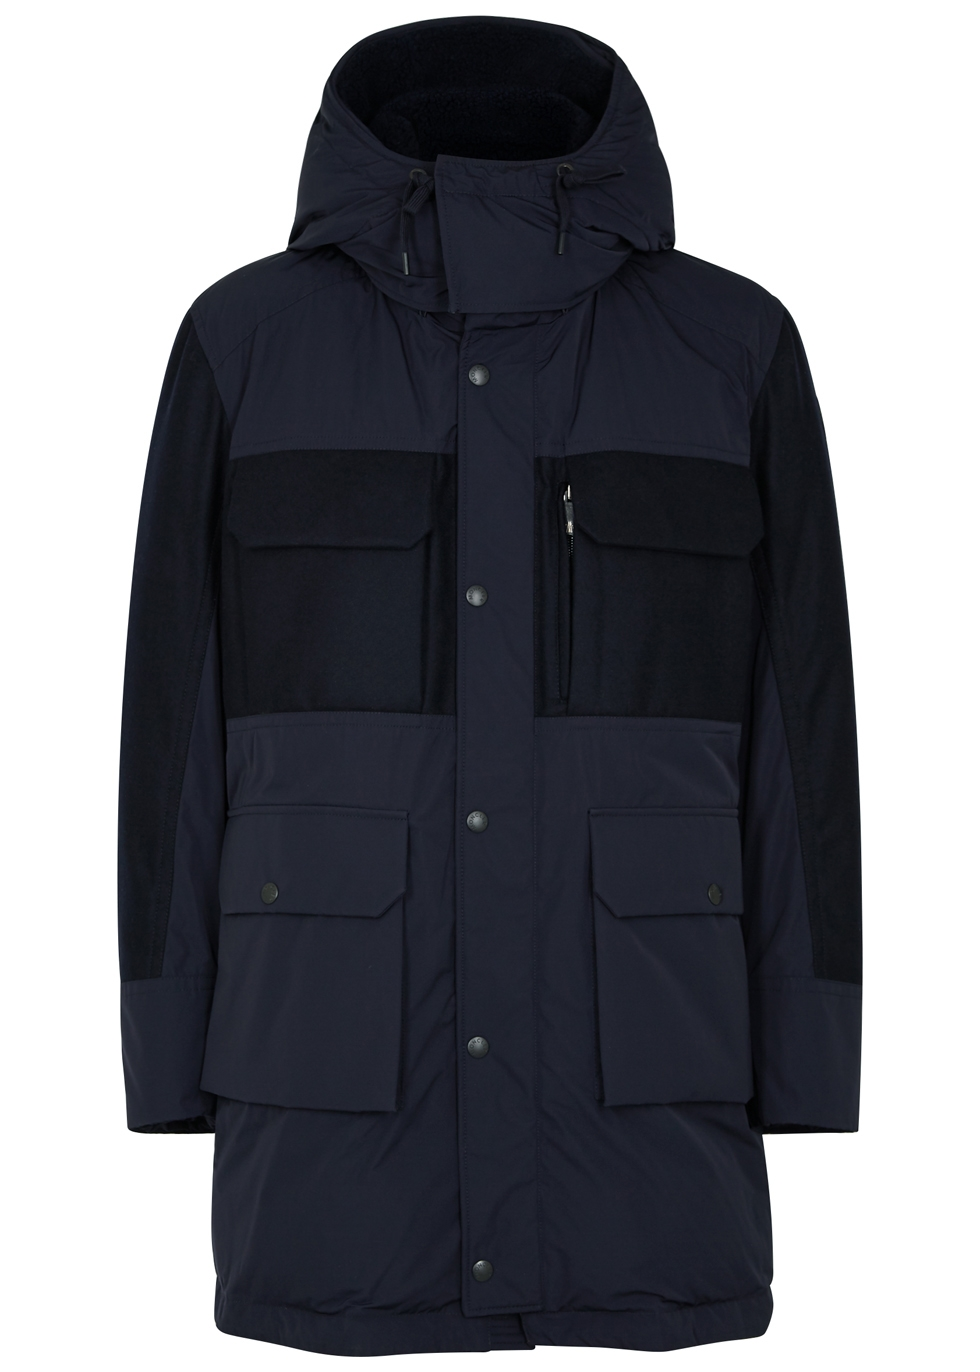 MONCLER PERRAULT NAVY WOOL AND NYLON PARKA